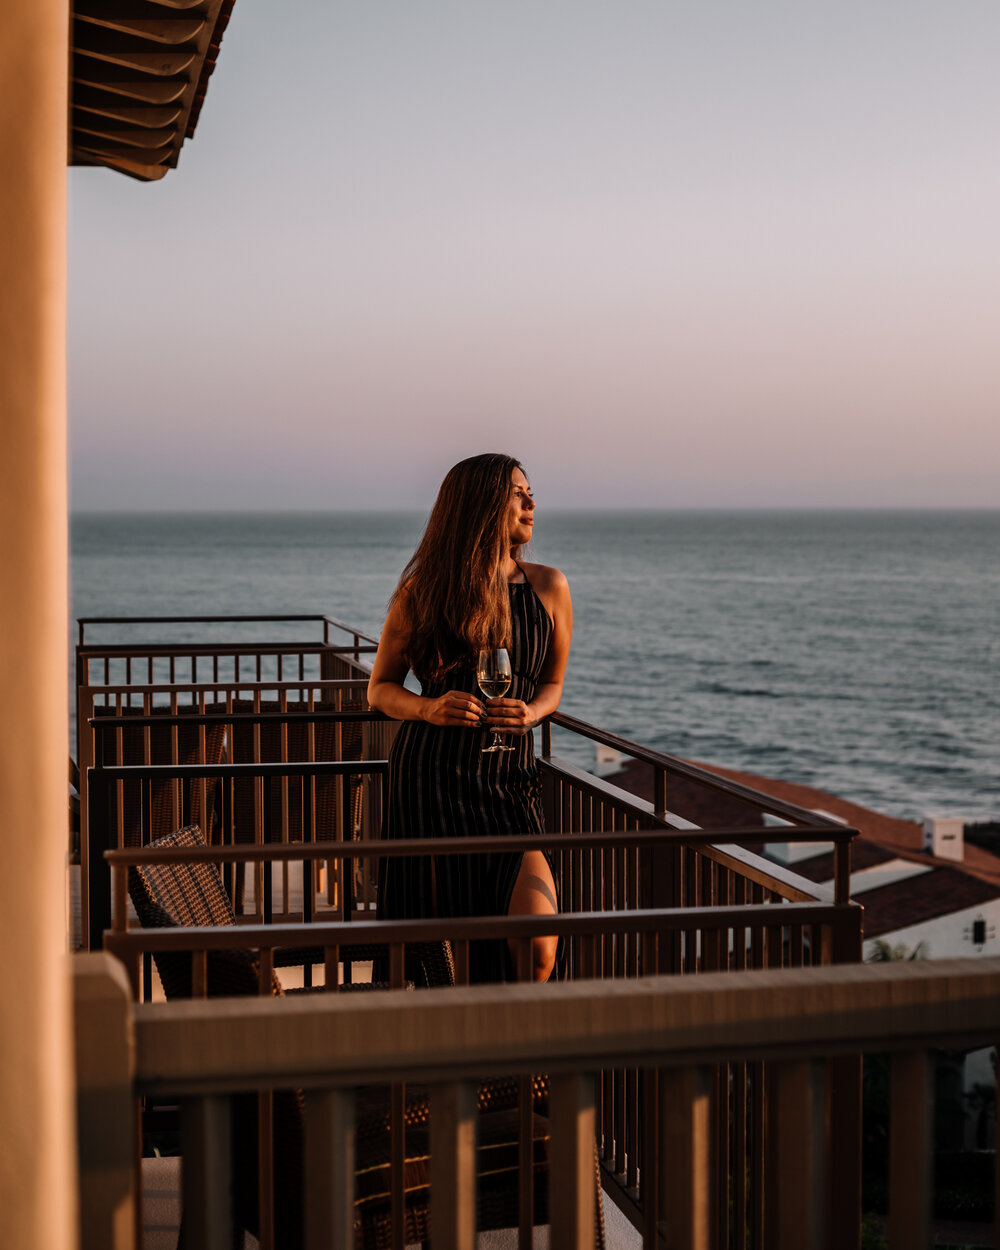 Rachel Off Duty: Woman Having a Glass of Wine at Sunset on a Balcony